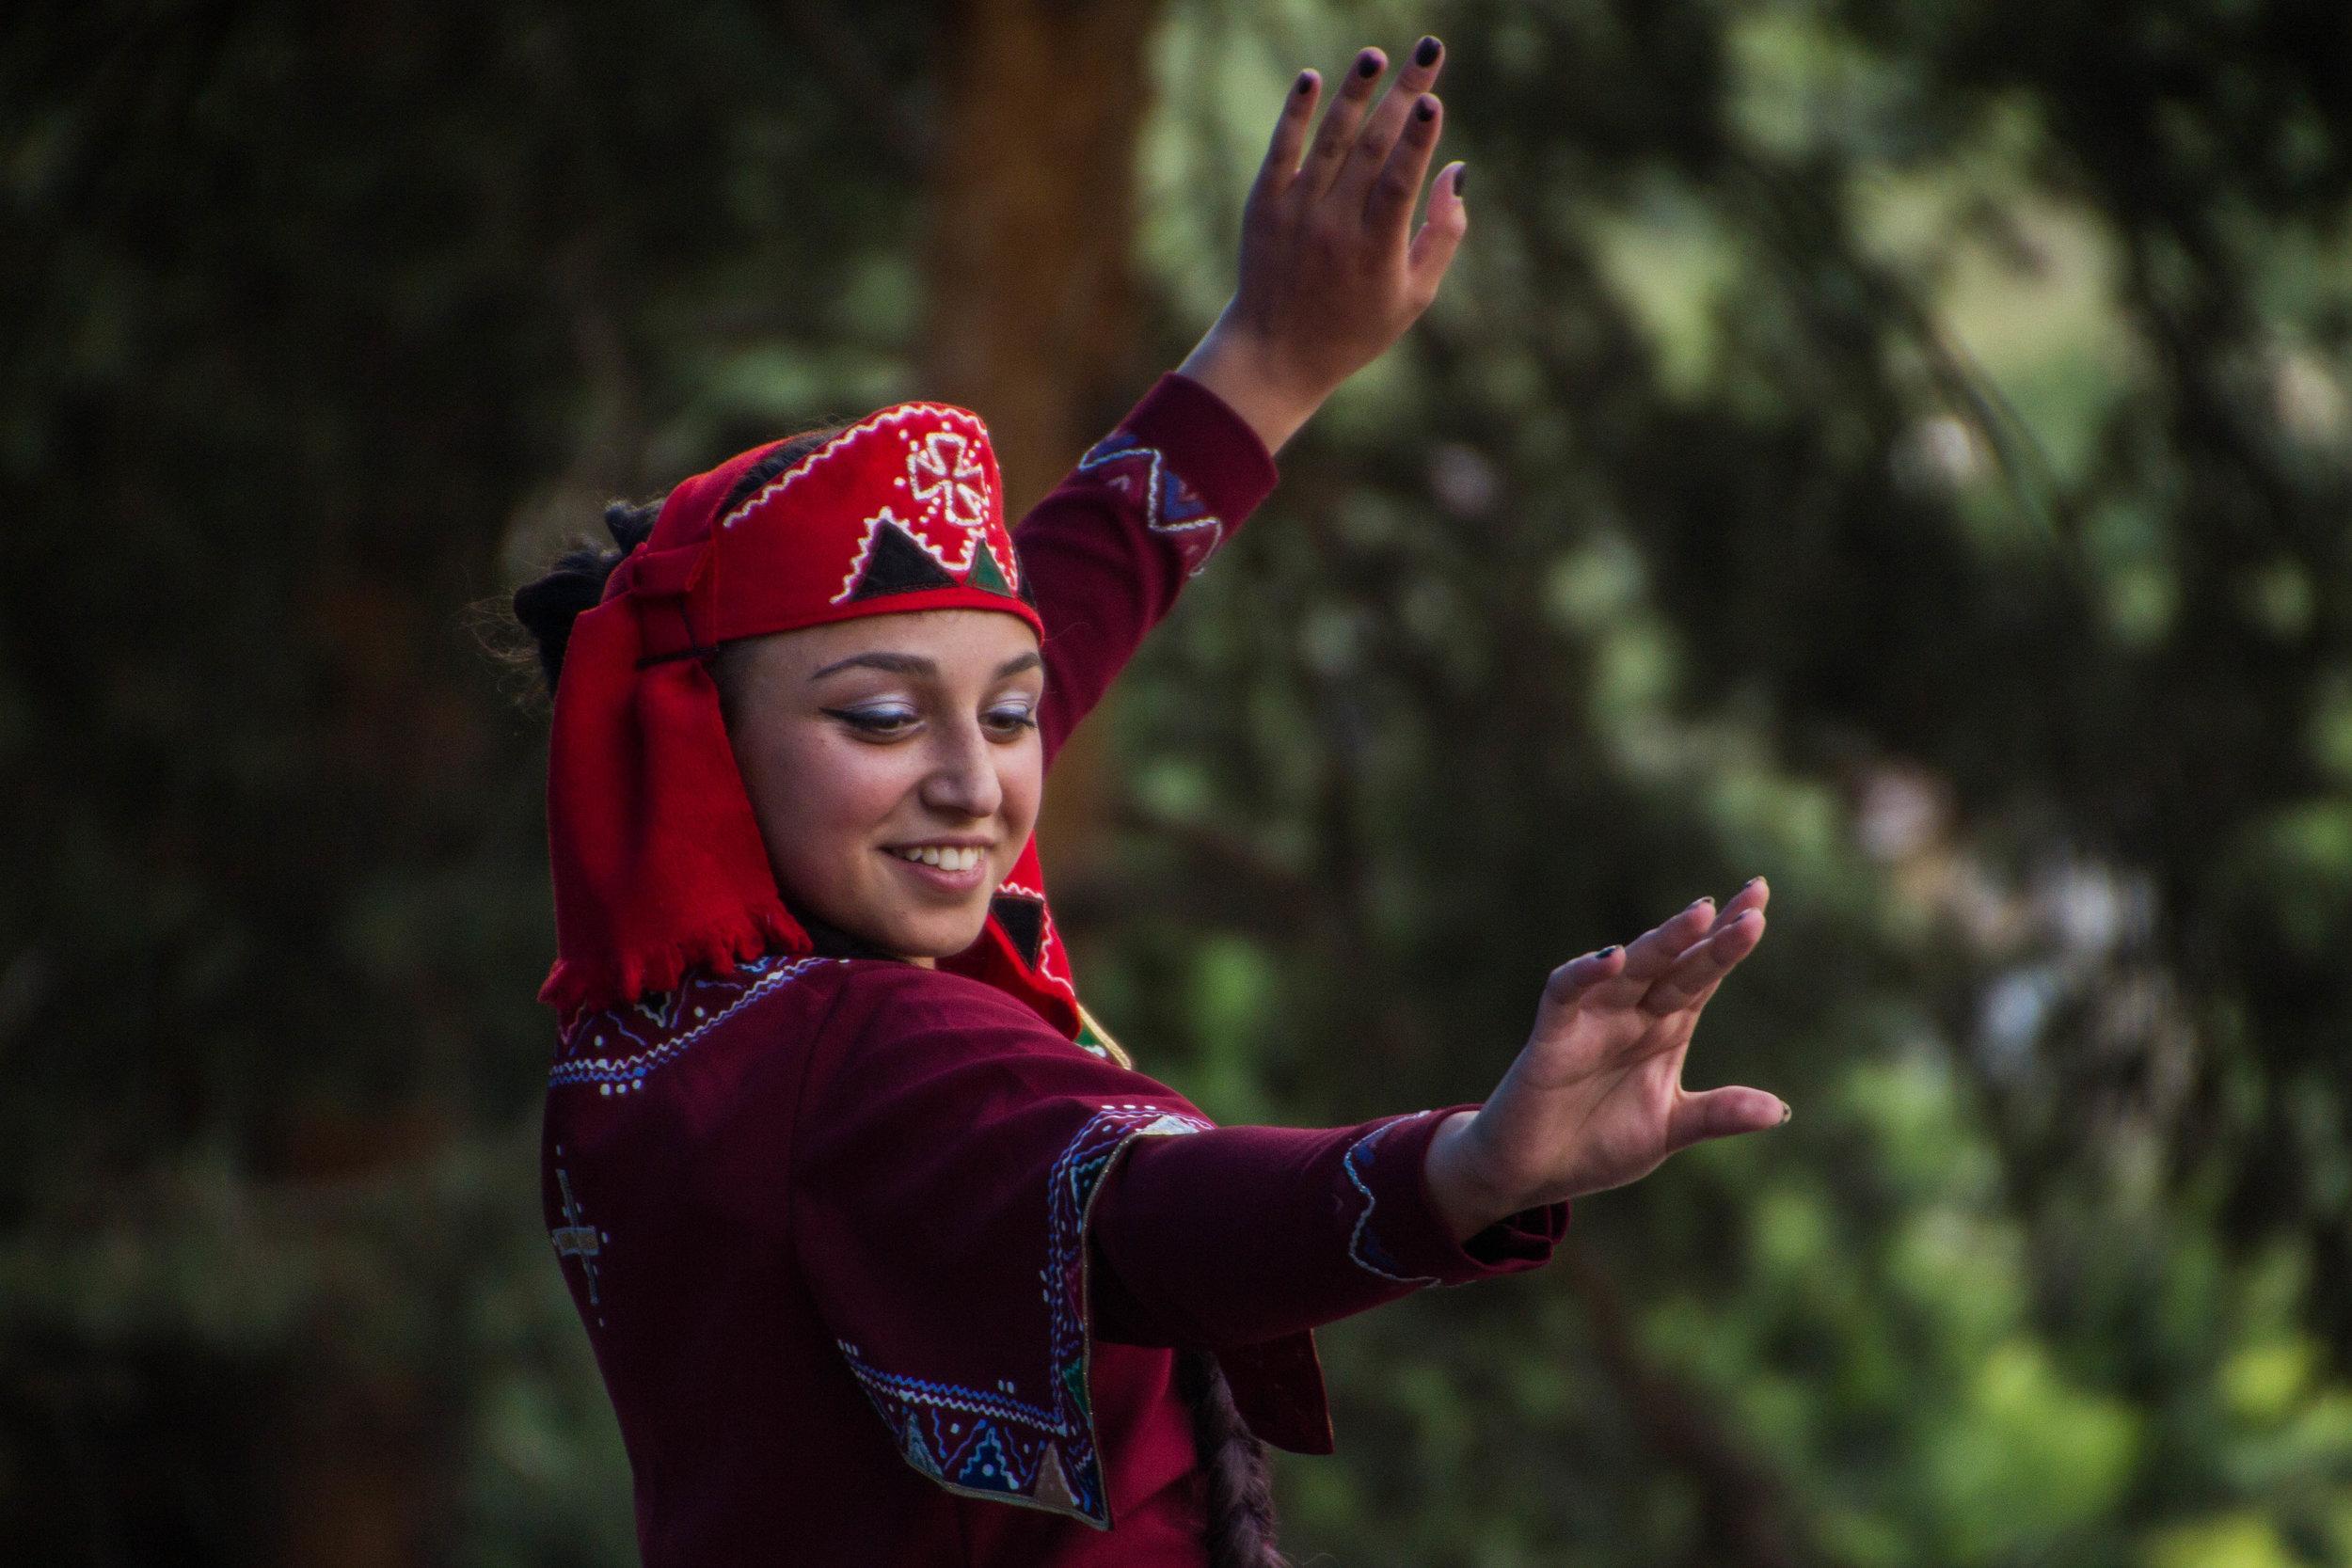 georgia-traditional-dancing-svaneti-mestia-5.jpg